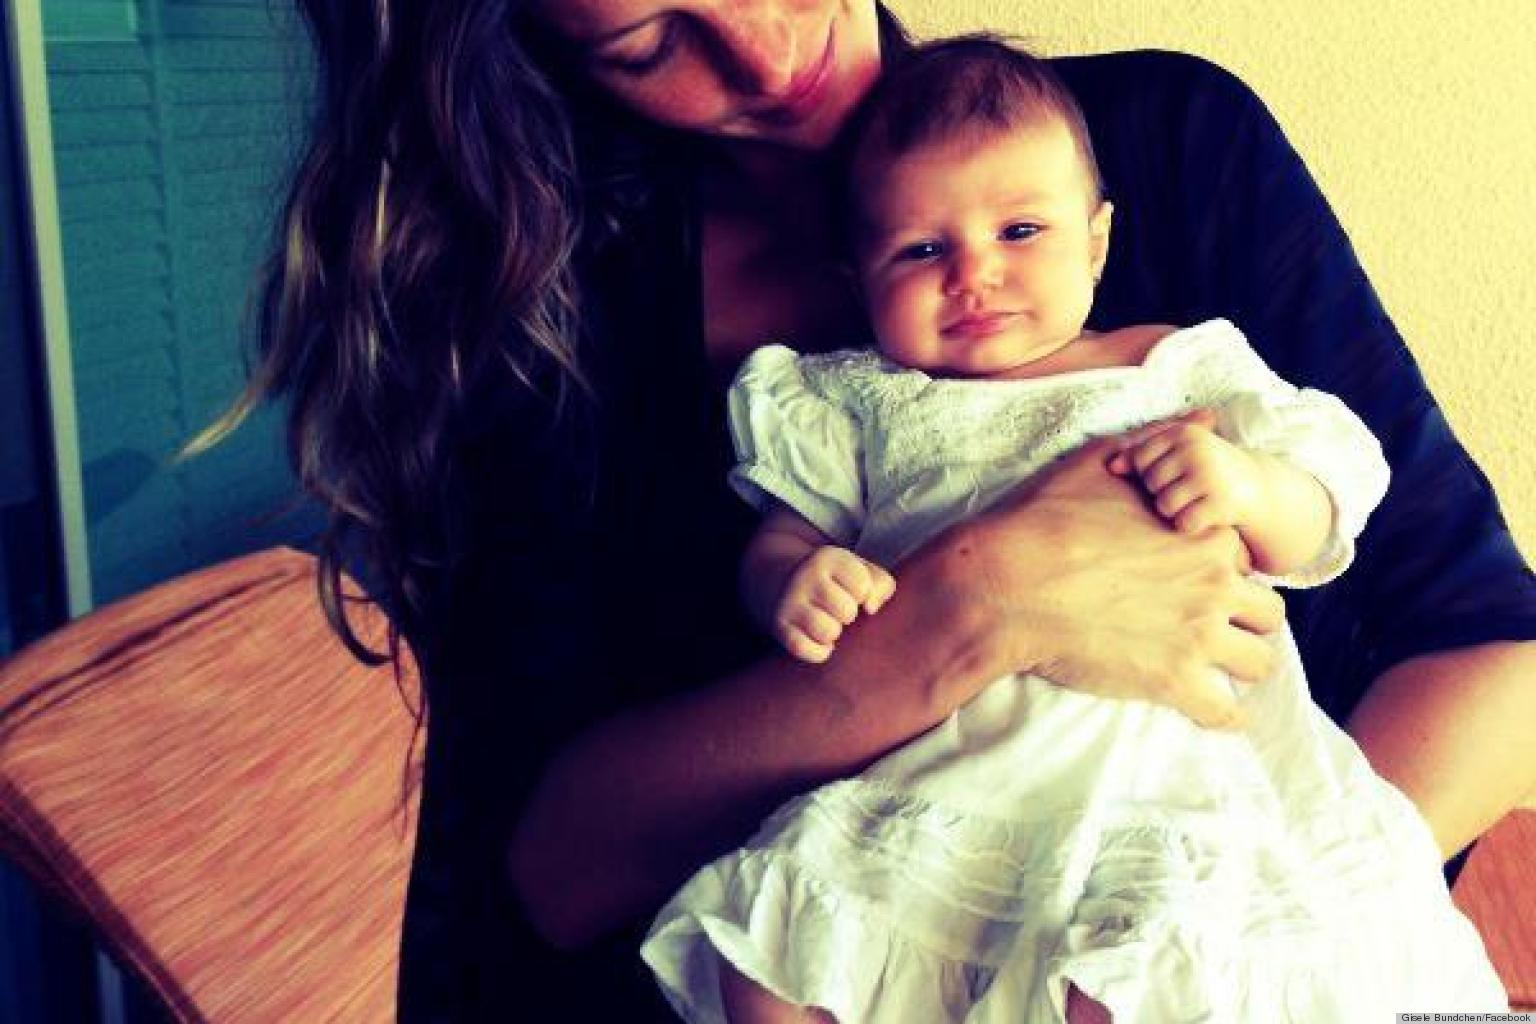 See The First Photo Of Gisele And Tom Brady's Daugher!